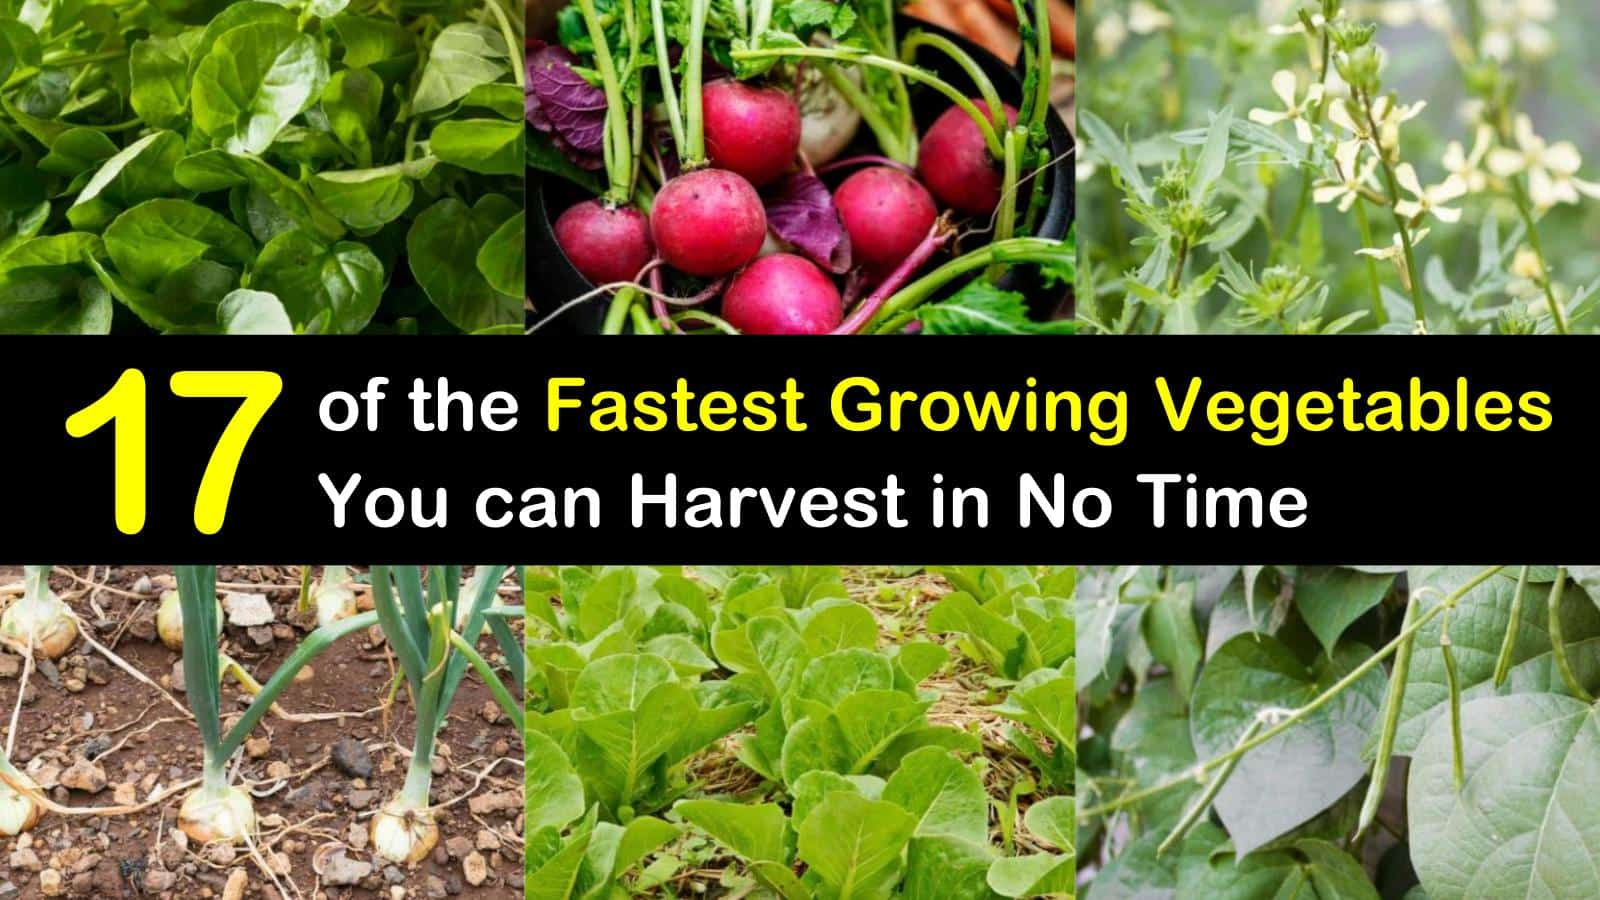 fastest growing vegetables titleimg1